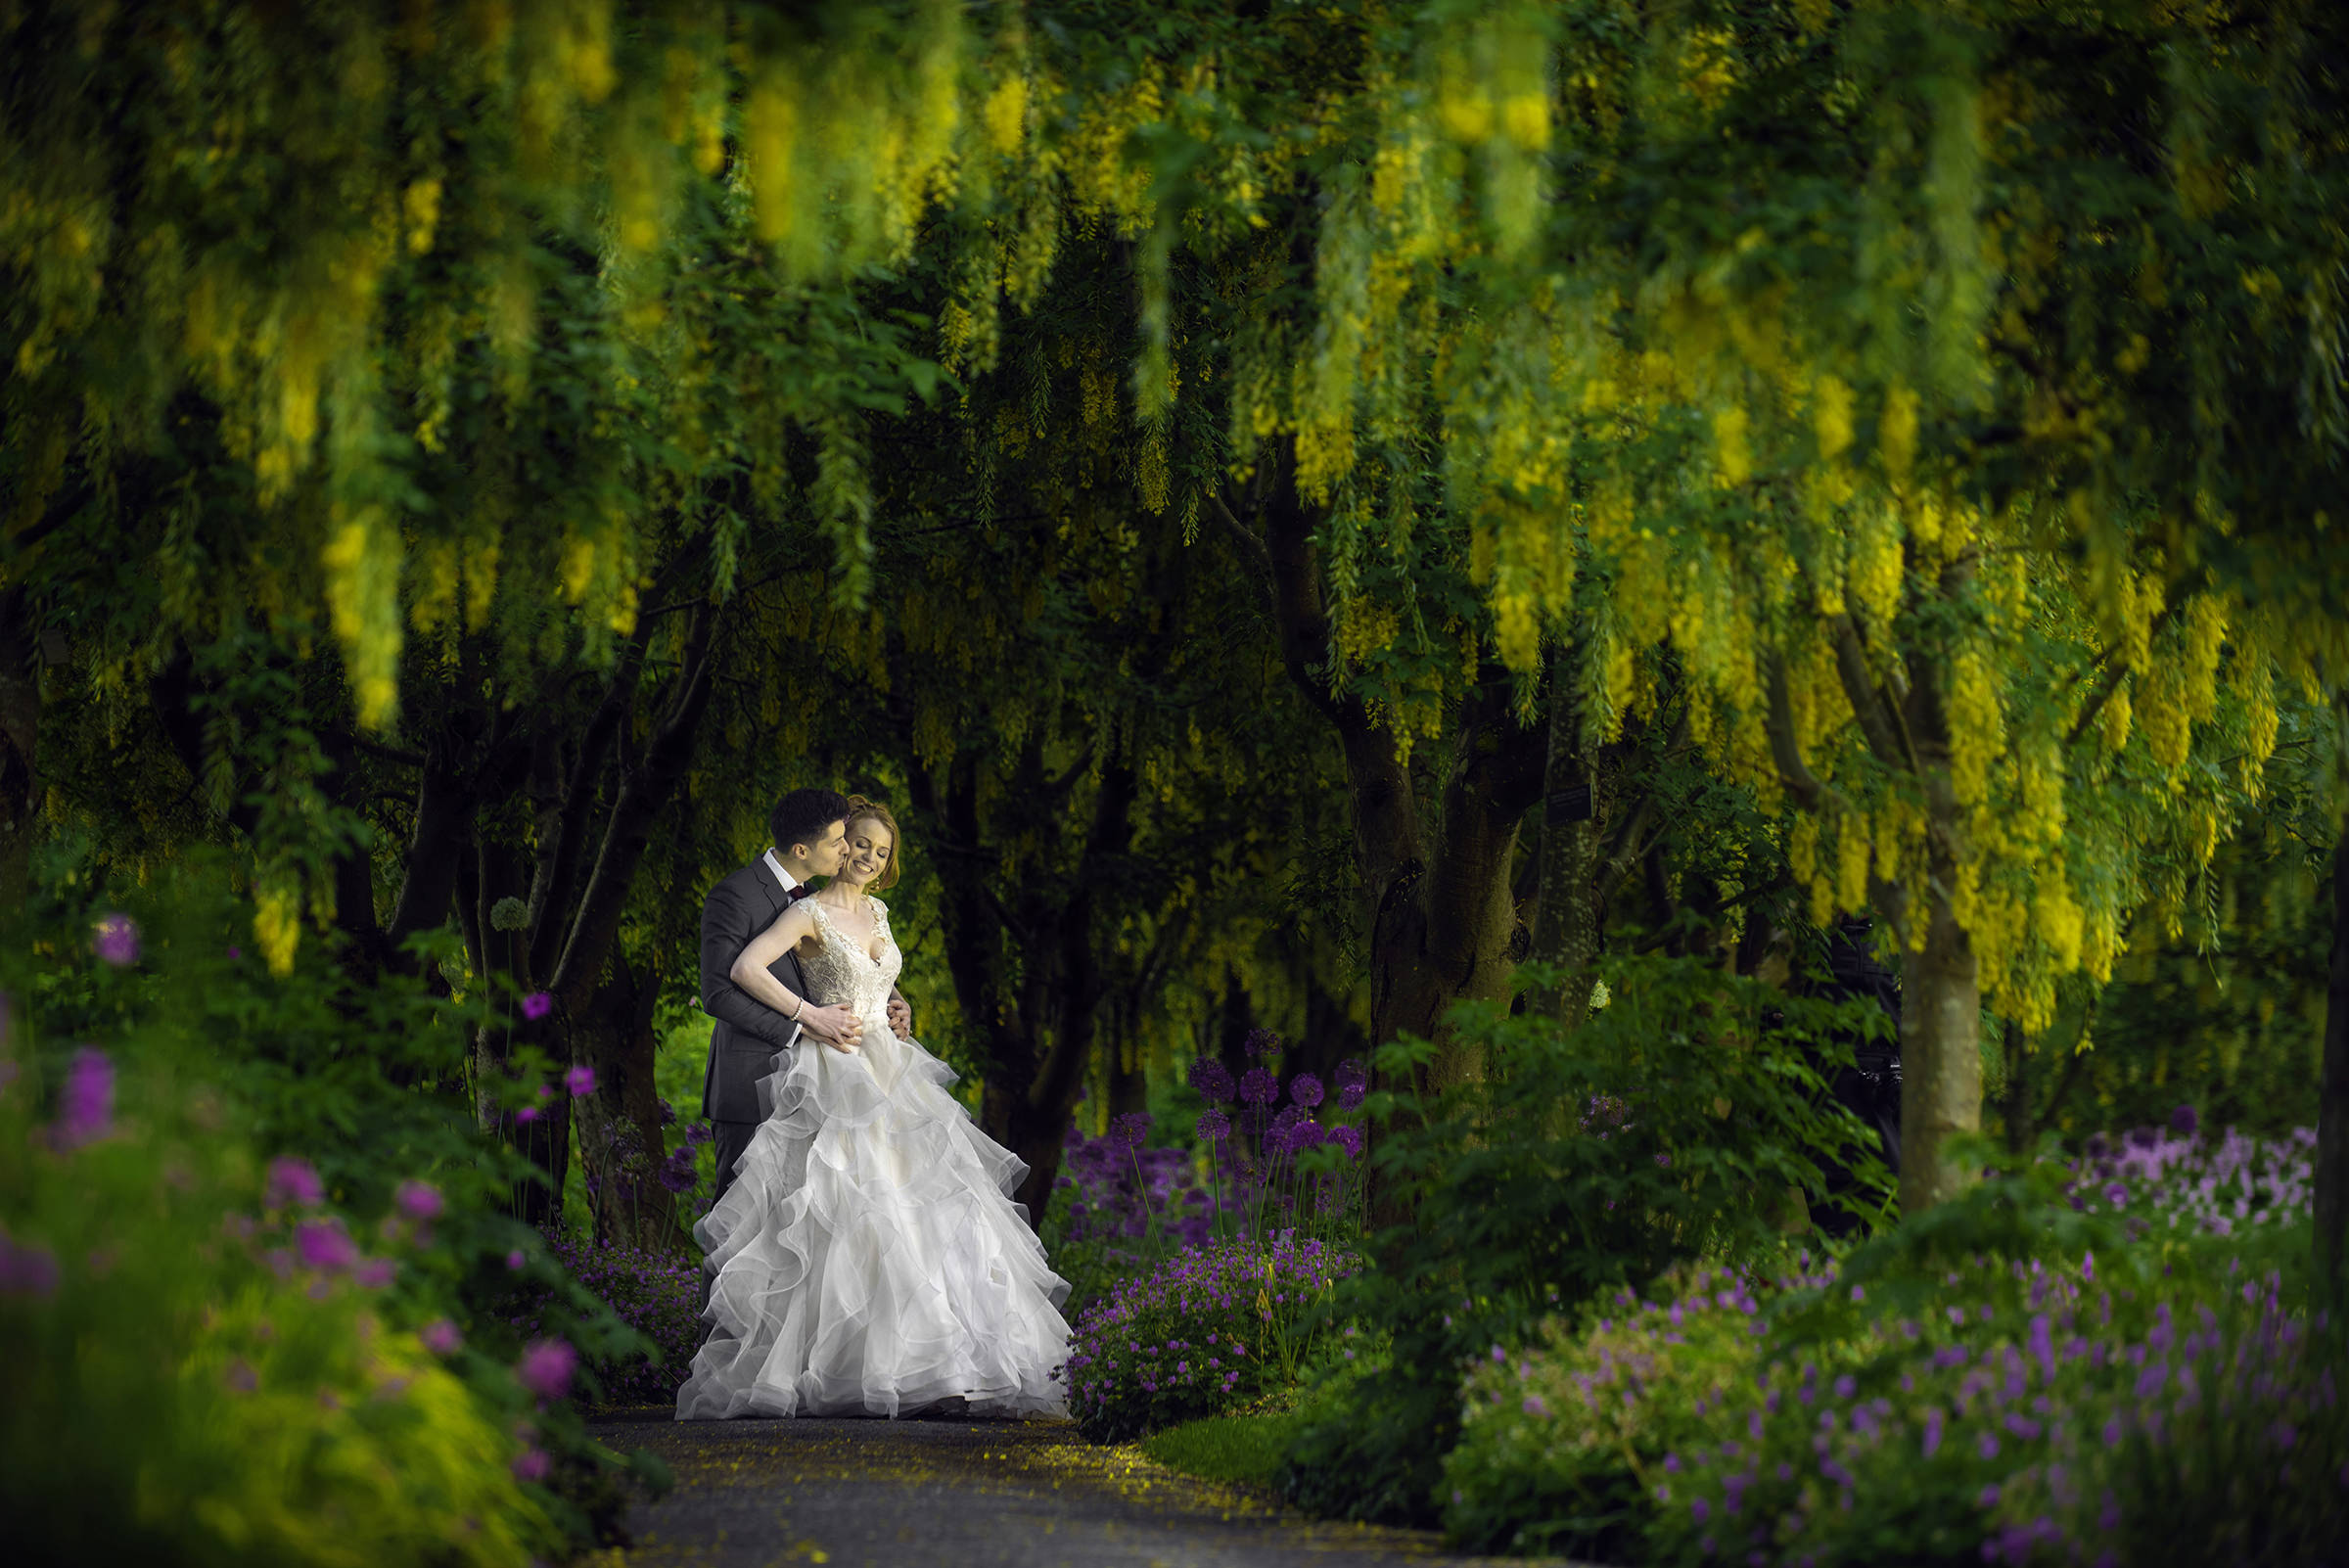 Van Dusen Garden wedding couple portrait under yellow wisteria